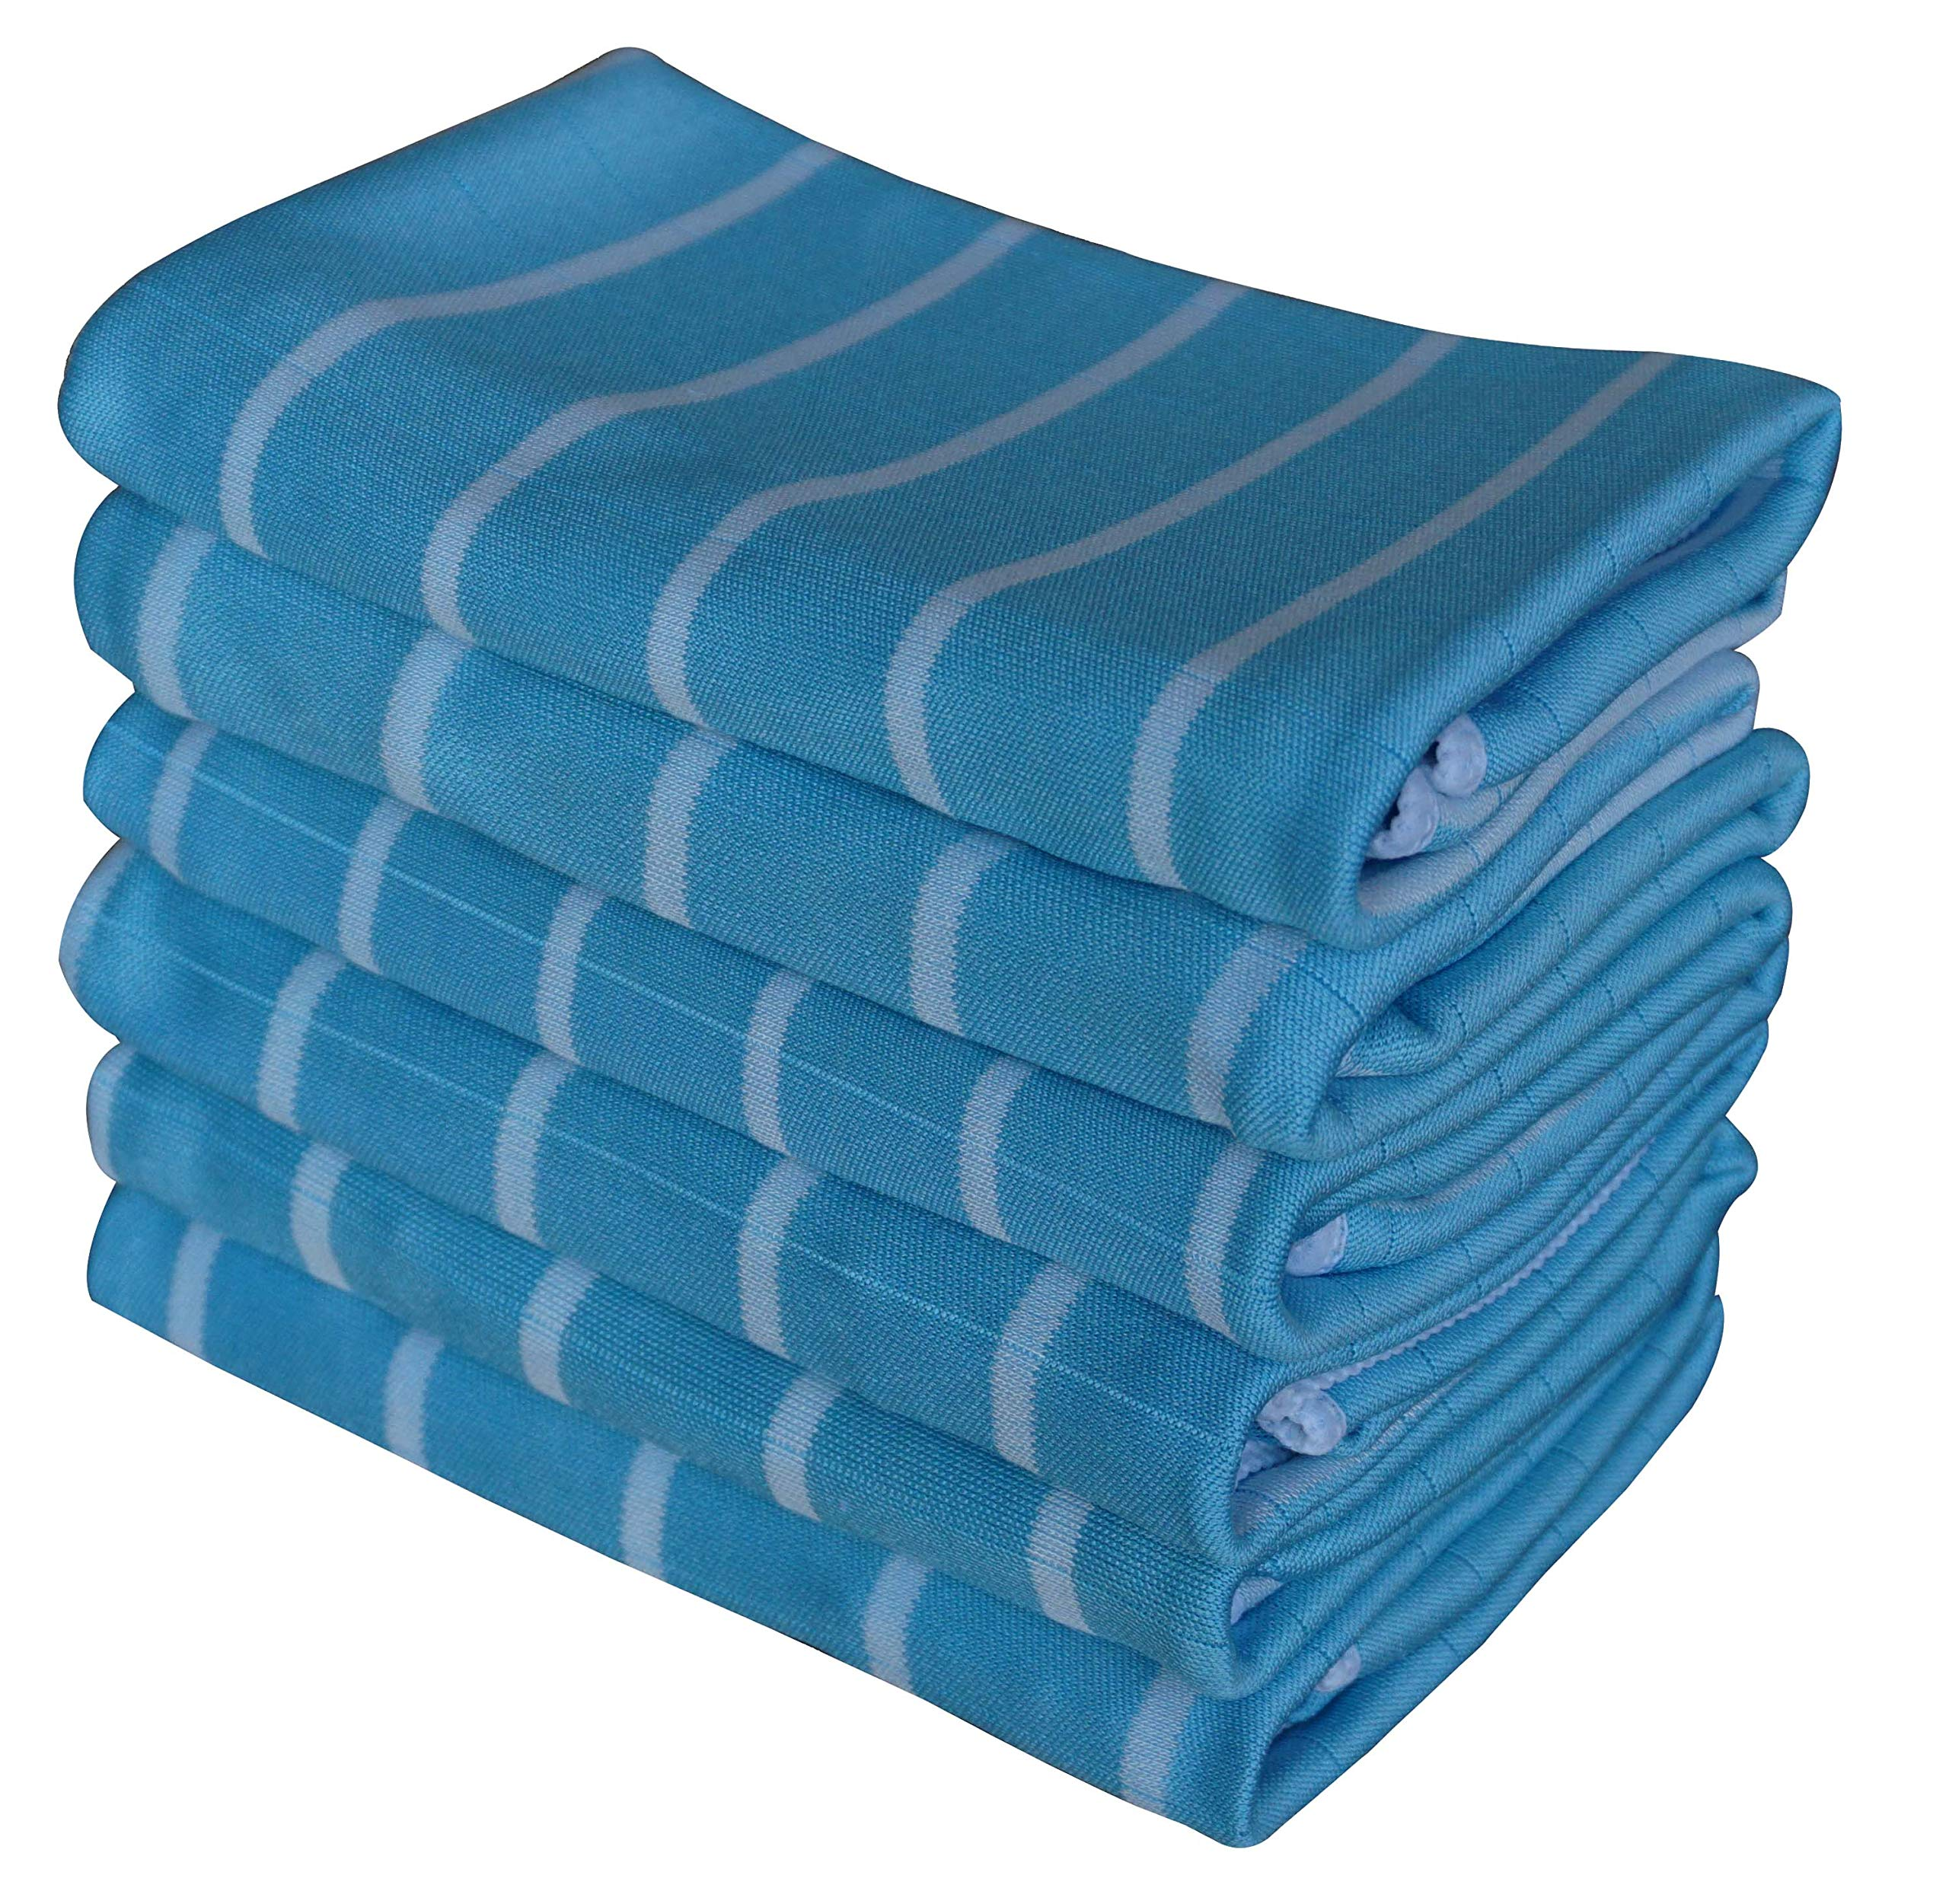 Gryeer Microfibre And Bamboo Kitchen Tea Towels Super Absorbent Lint Free Dish Glass Cloth Cleaning Cloths For Screen Window Mirror 65x45cm Set Of 6 Blue Buy Online In Antigua And Barbuda At Antigua Desertcart Com